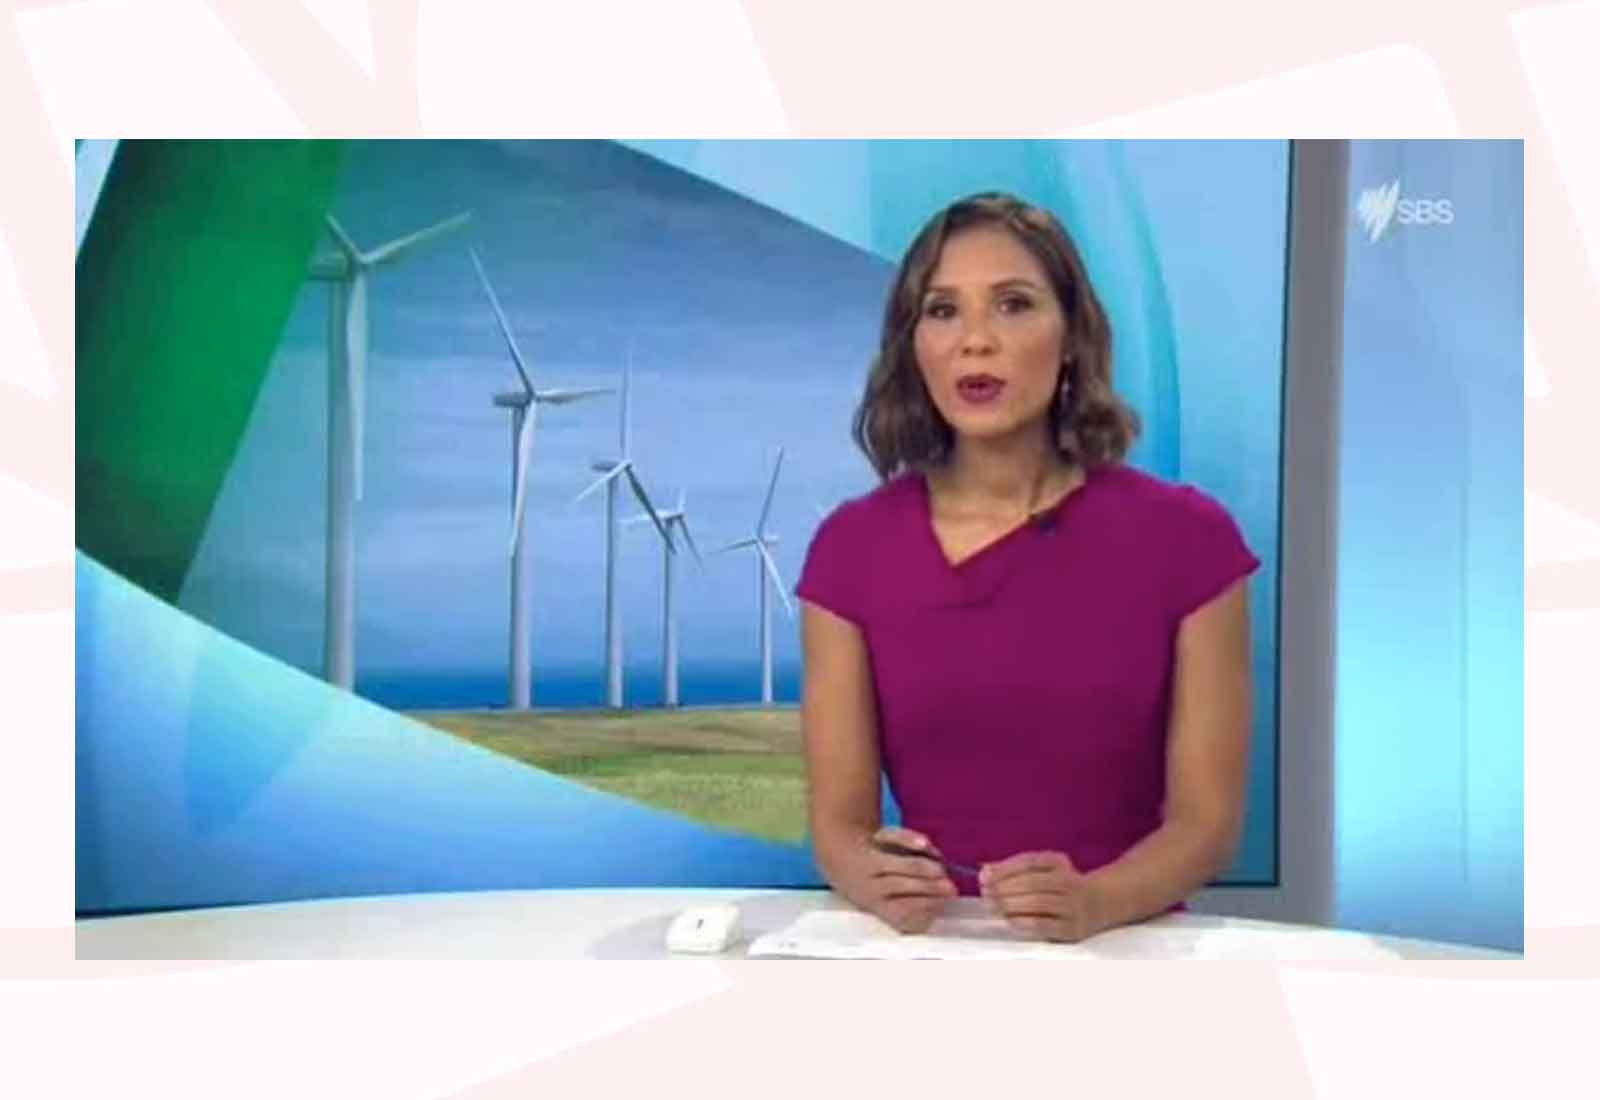 Wind Turbine Truth: Is Clean Energy Making You Sick?